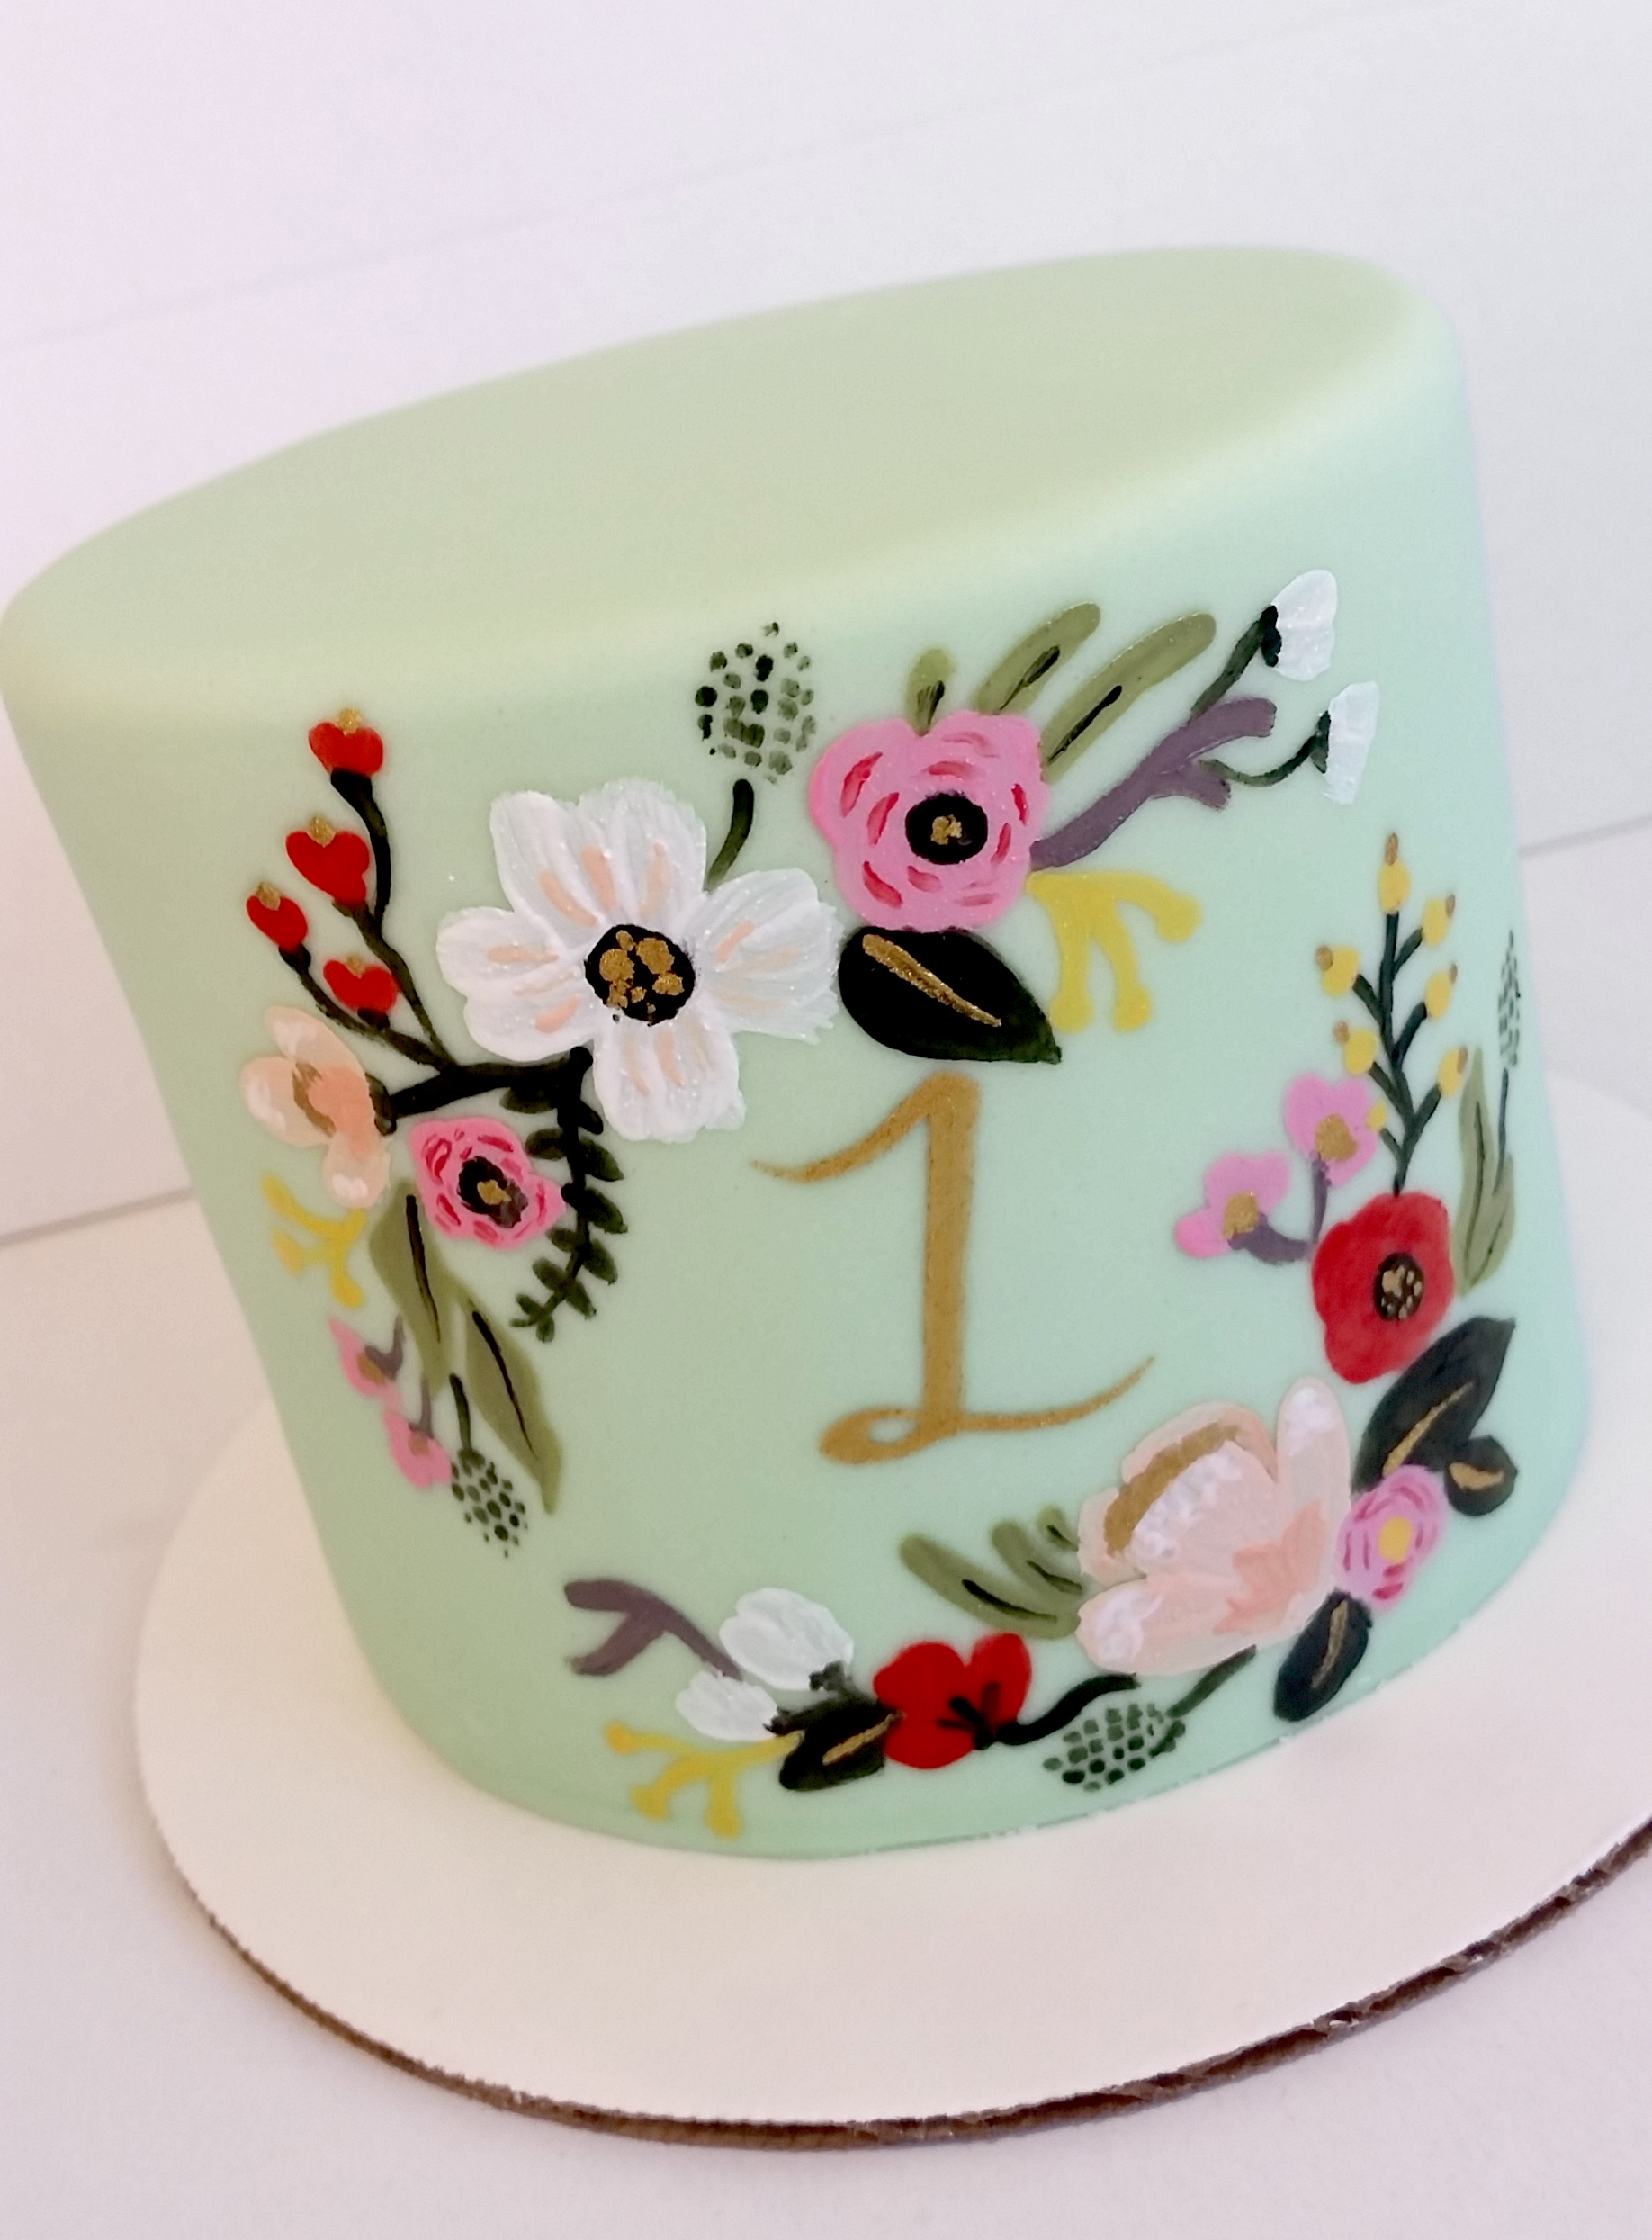 Rifle paper painted cake.jpg